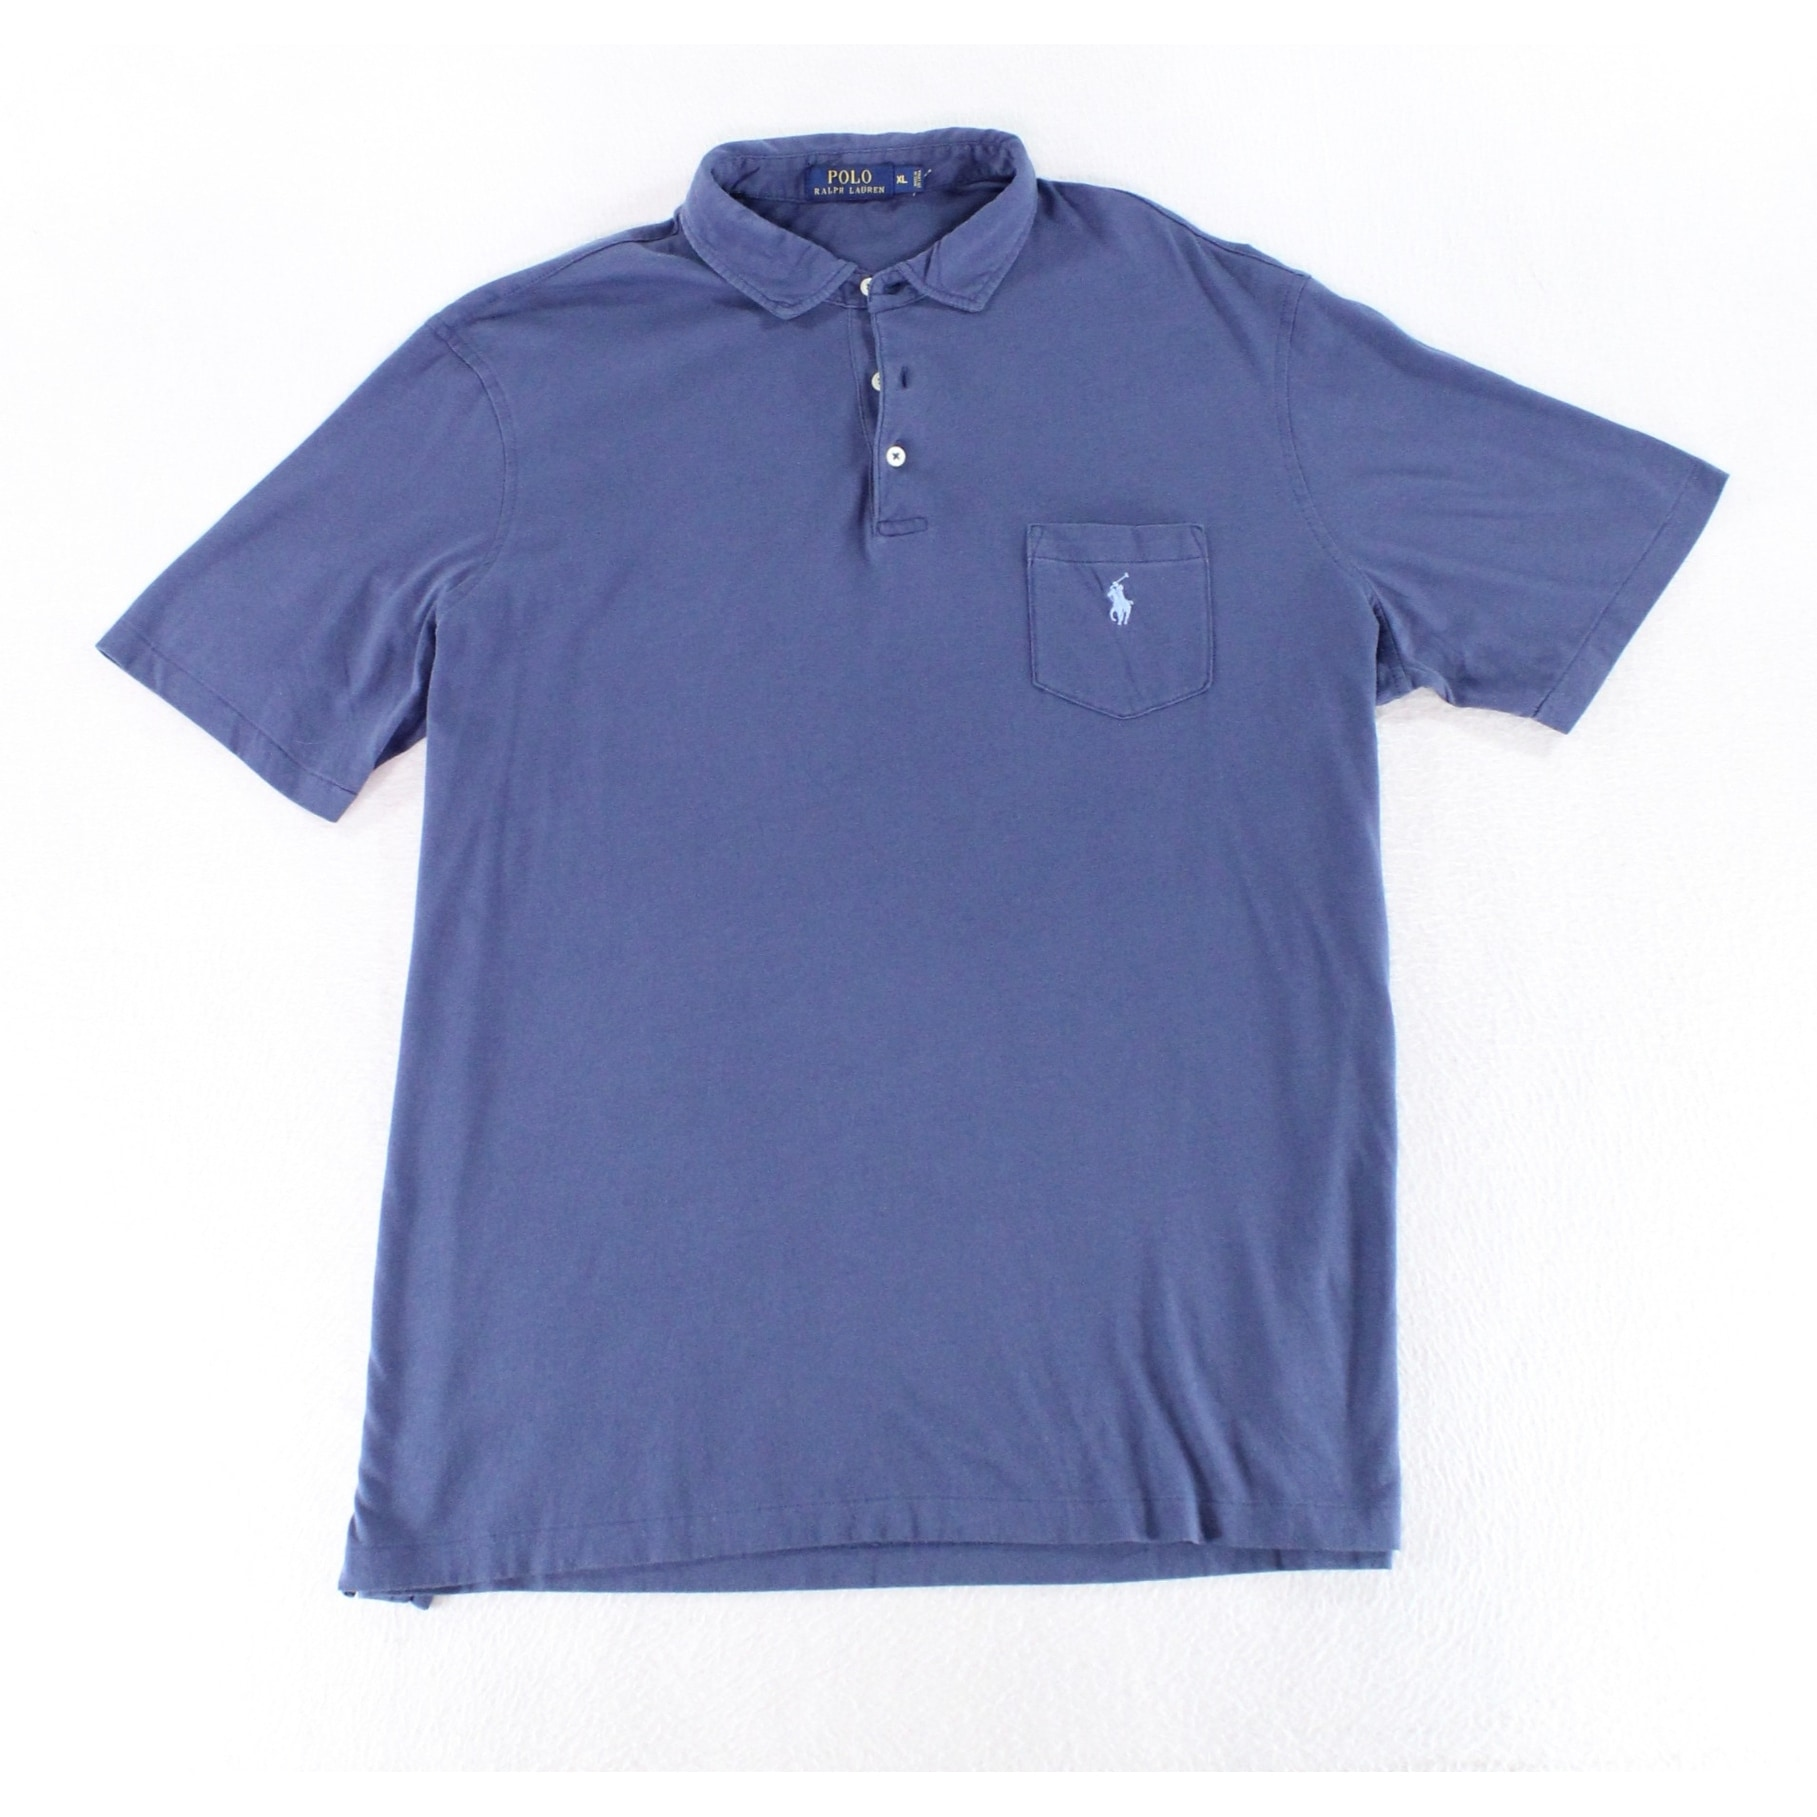 Shop Polo Ralph Lauren Solid Navy Blue Mens Size Xl Polo Rugby Shirt